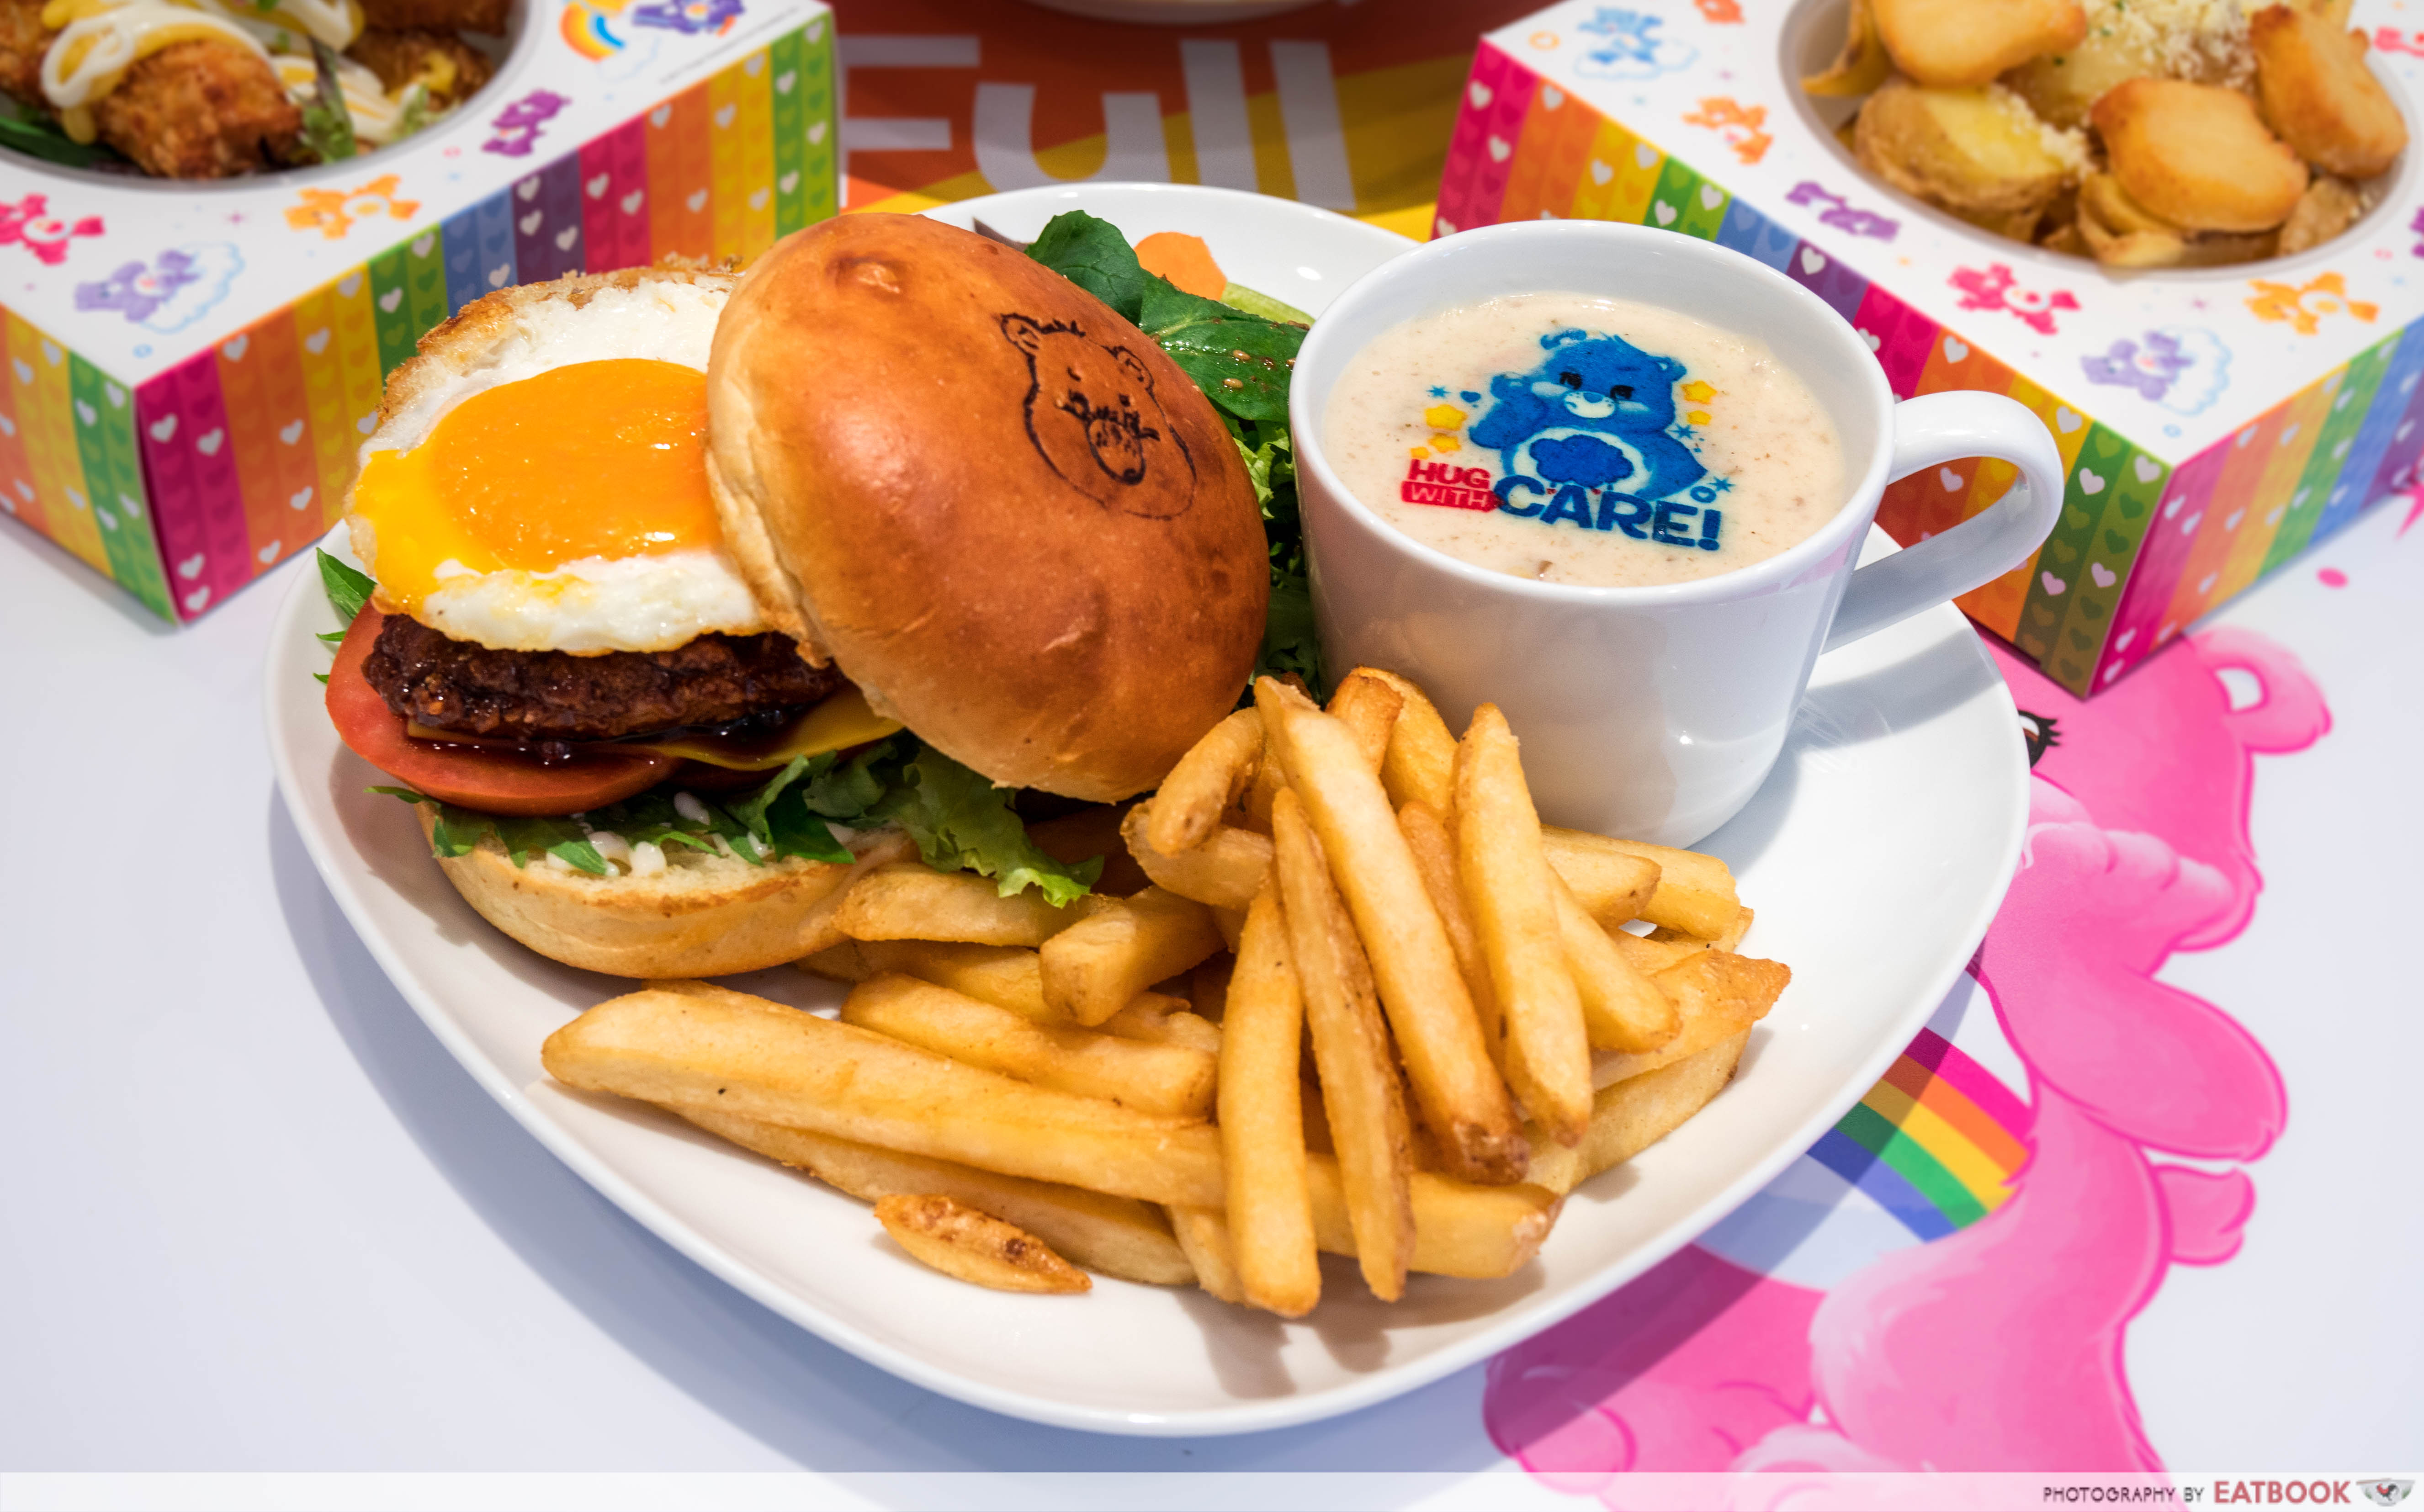 Care Bears Cafe - chicken burger